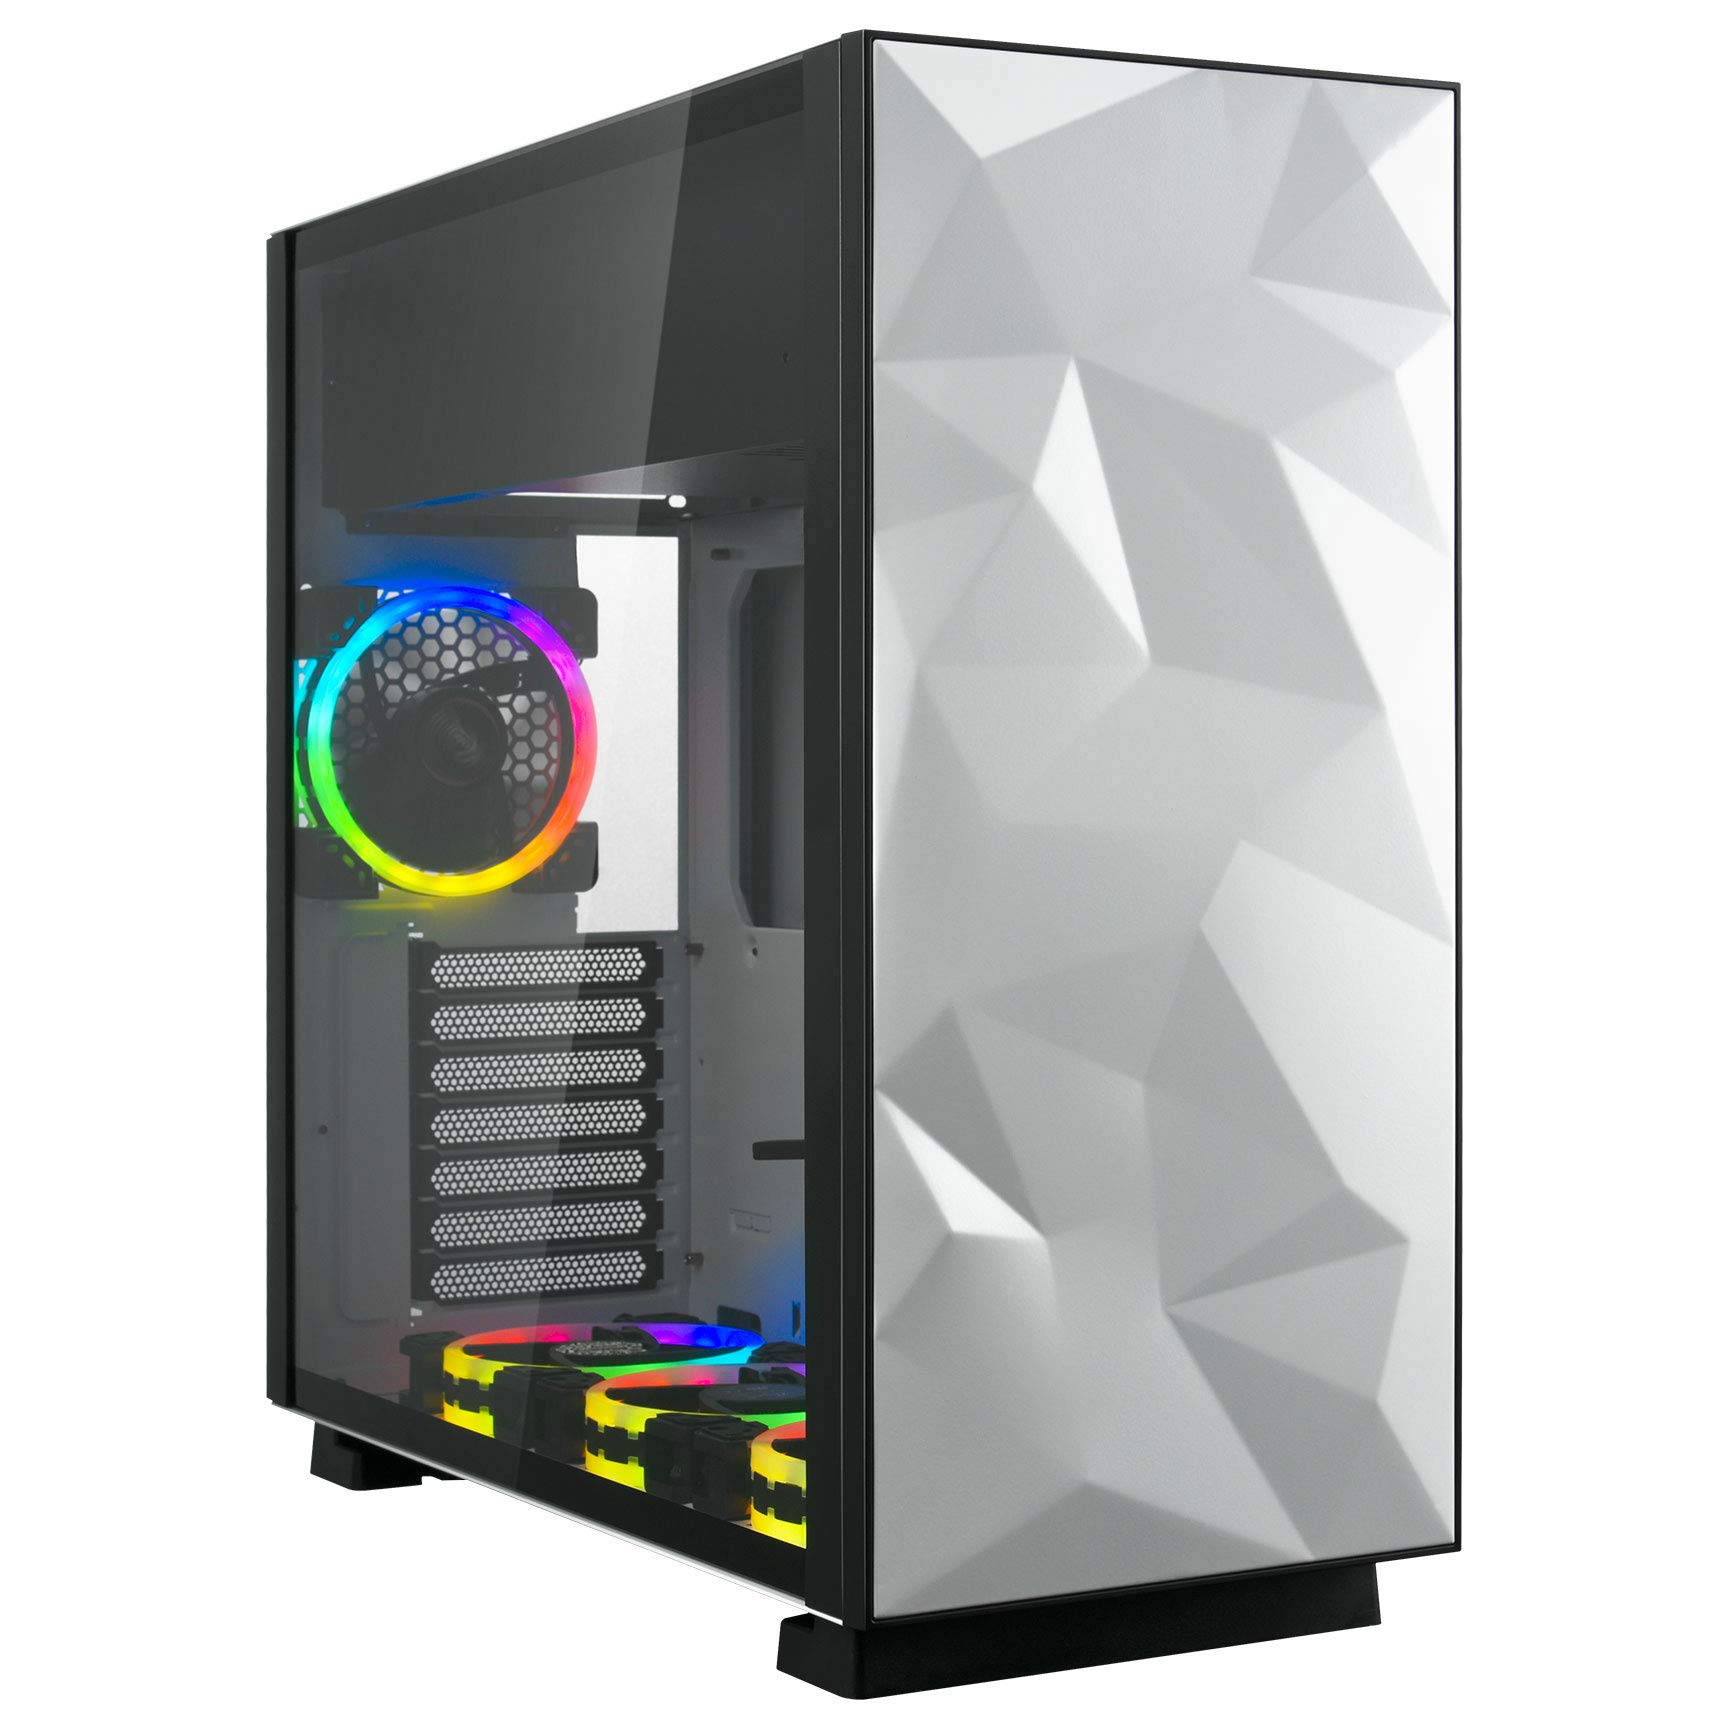 Rosewill ATX Mid Tower Gaming Computer Case with Tempered Glass and RGB Fans, Up to 240mm AIO and 440mm VGA Support, Sync with ASUS, MSI, and Gigabyte MOBO, Top Mount PSU & HDD/SSD - Prism S by Rosewill